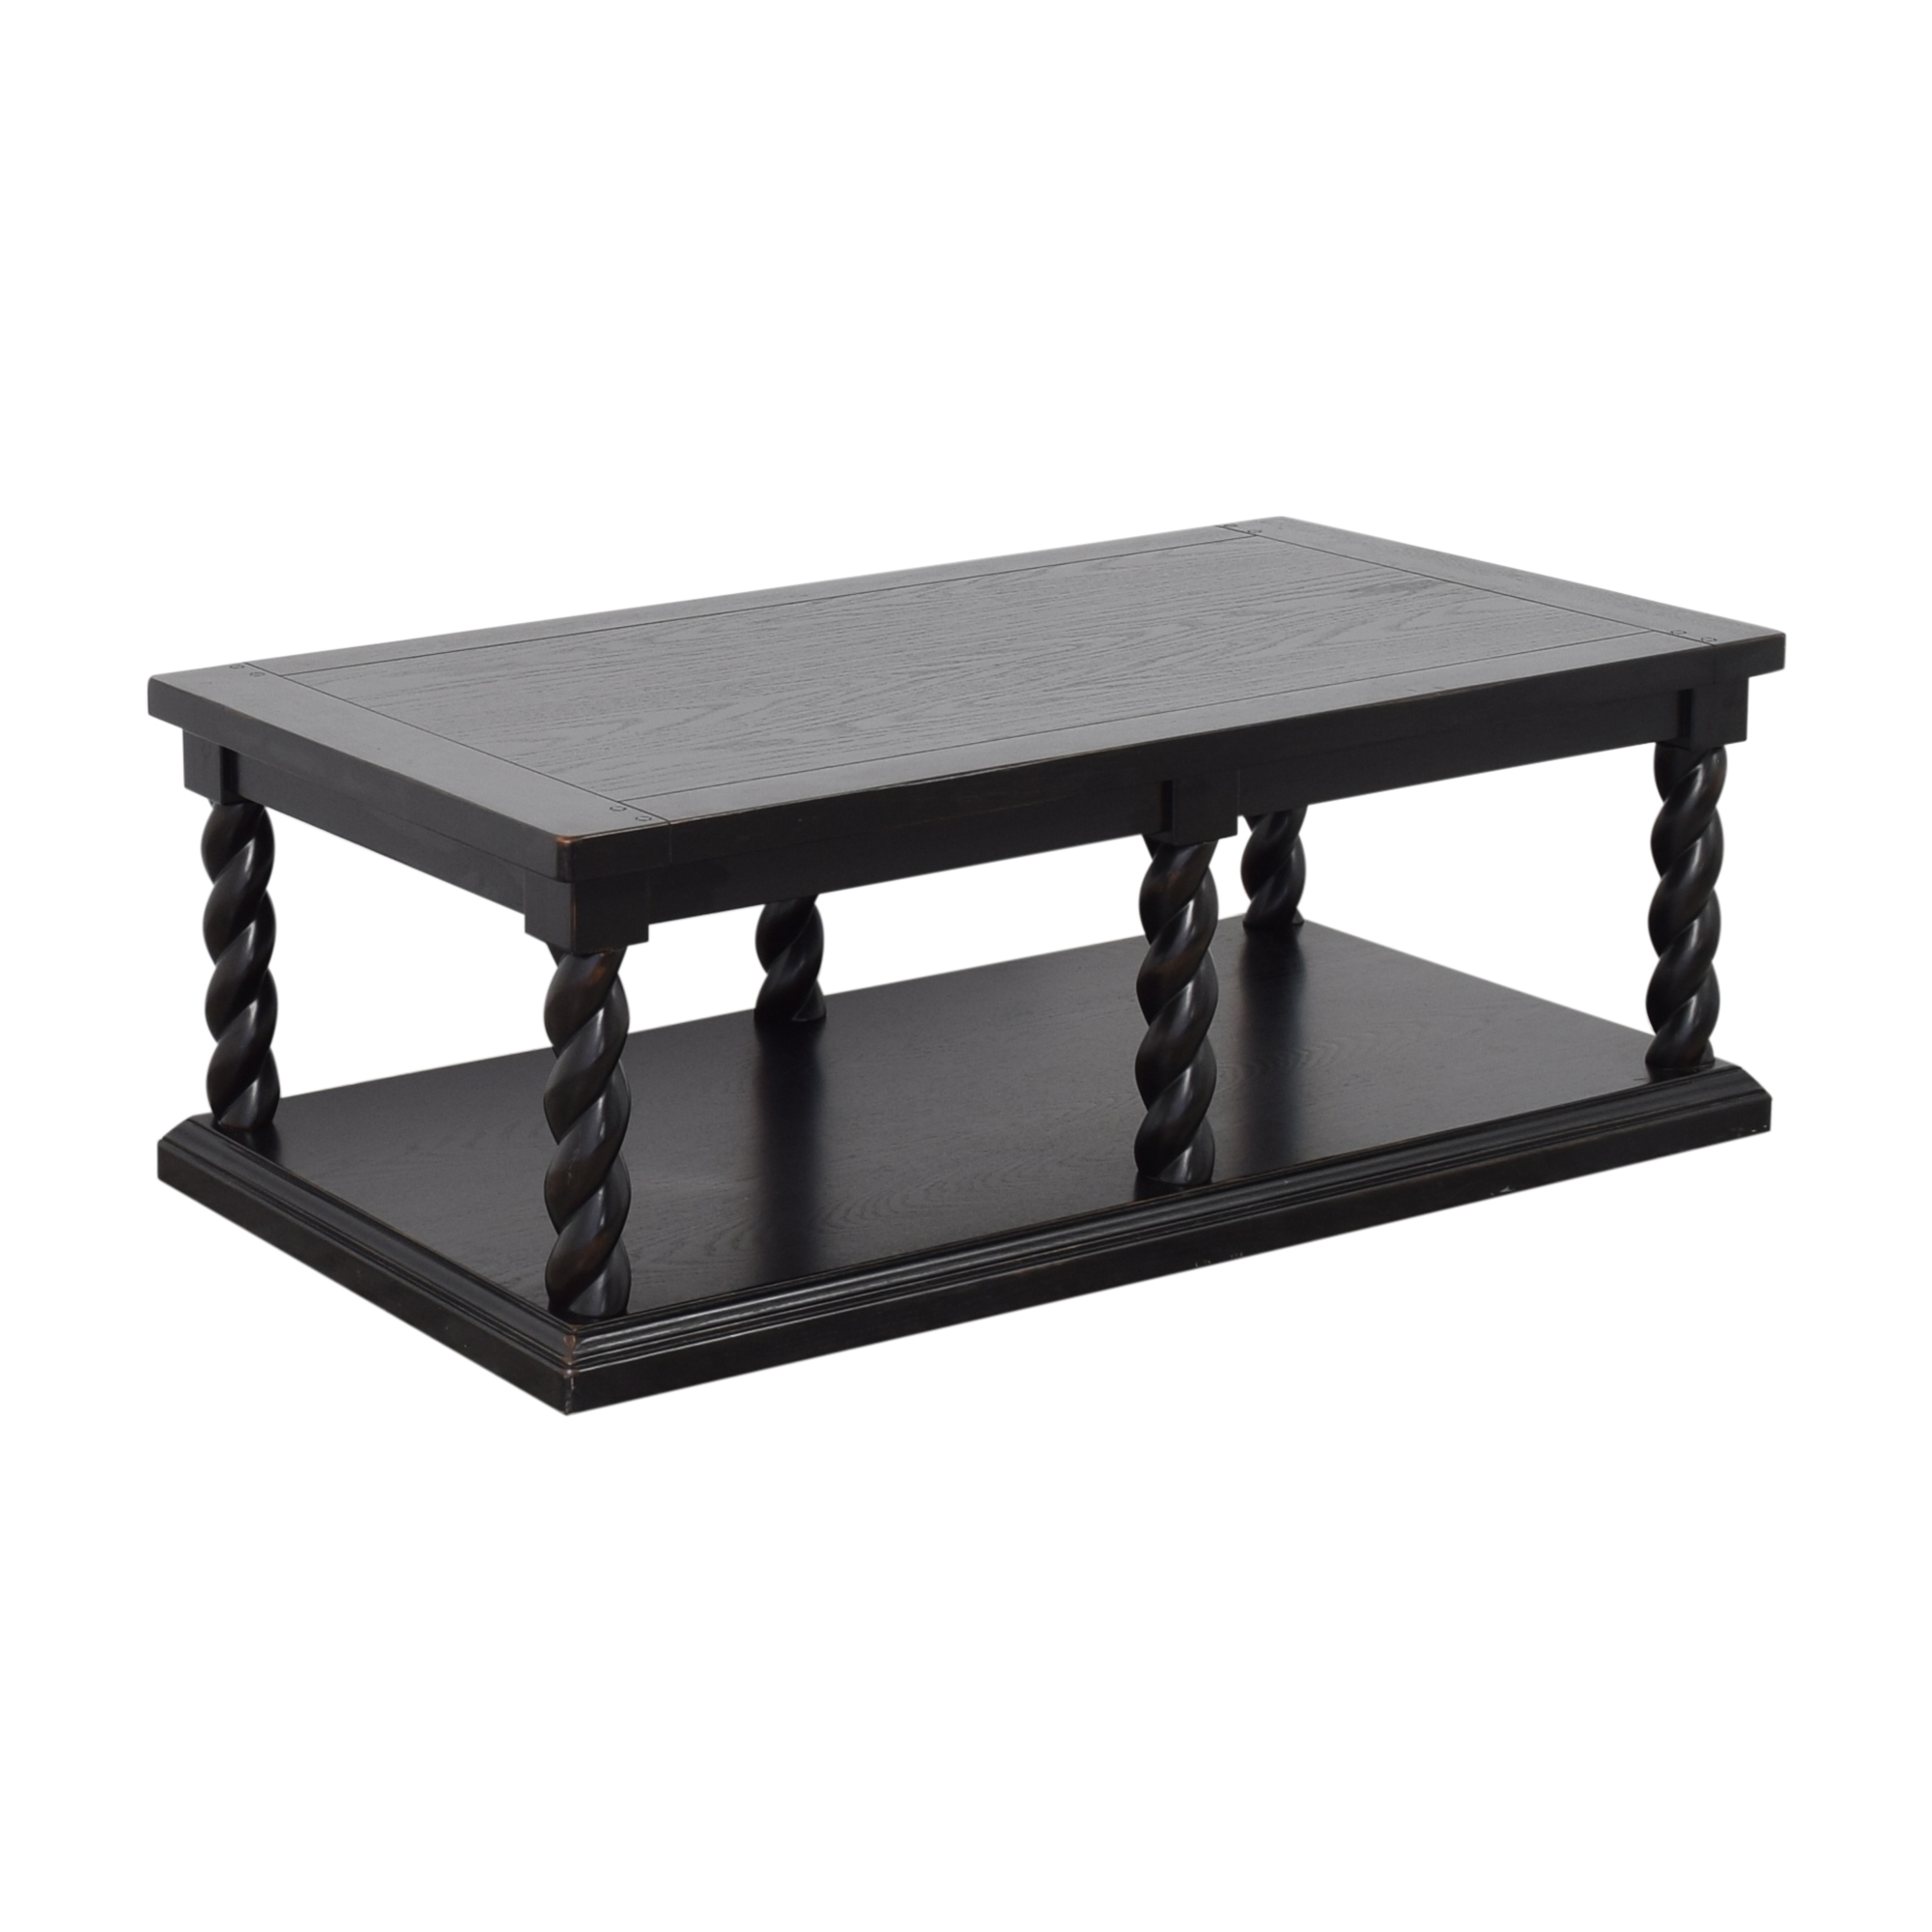 Spindle Leg Coffee Table ma